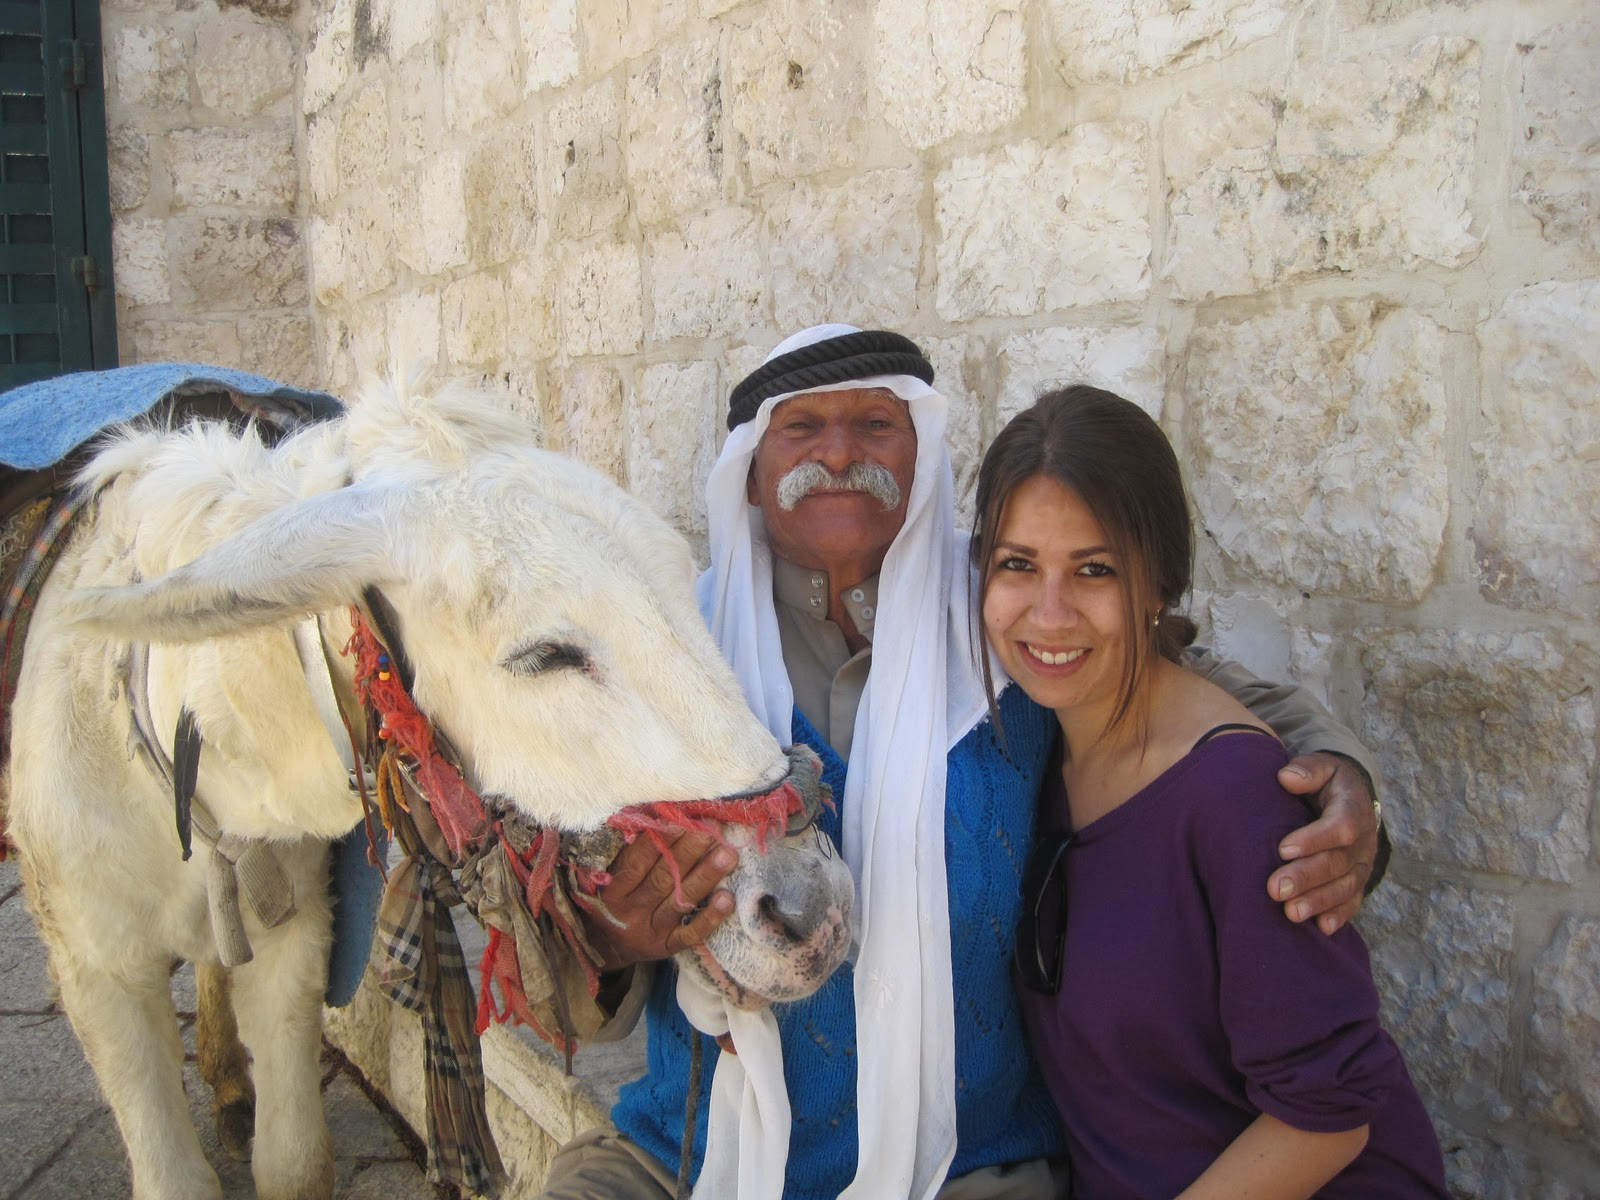 Sister with donkey sitting outside of the Jewish cemetery.